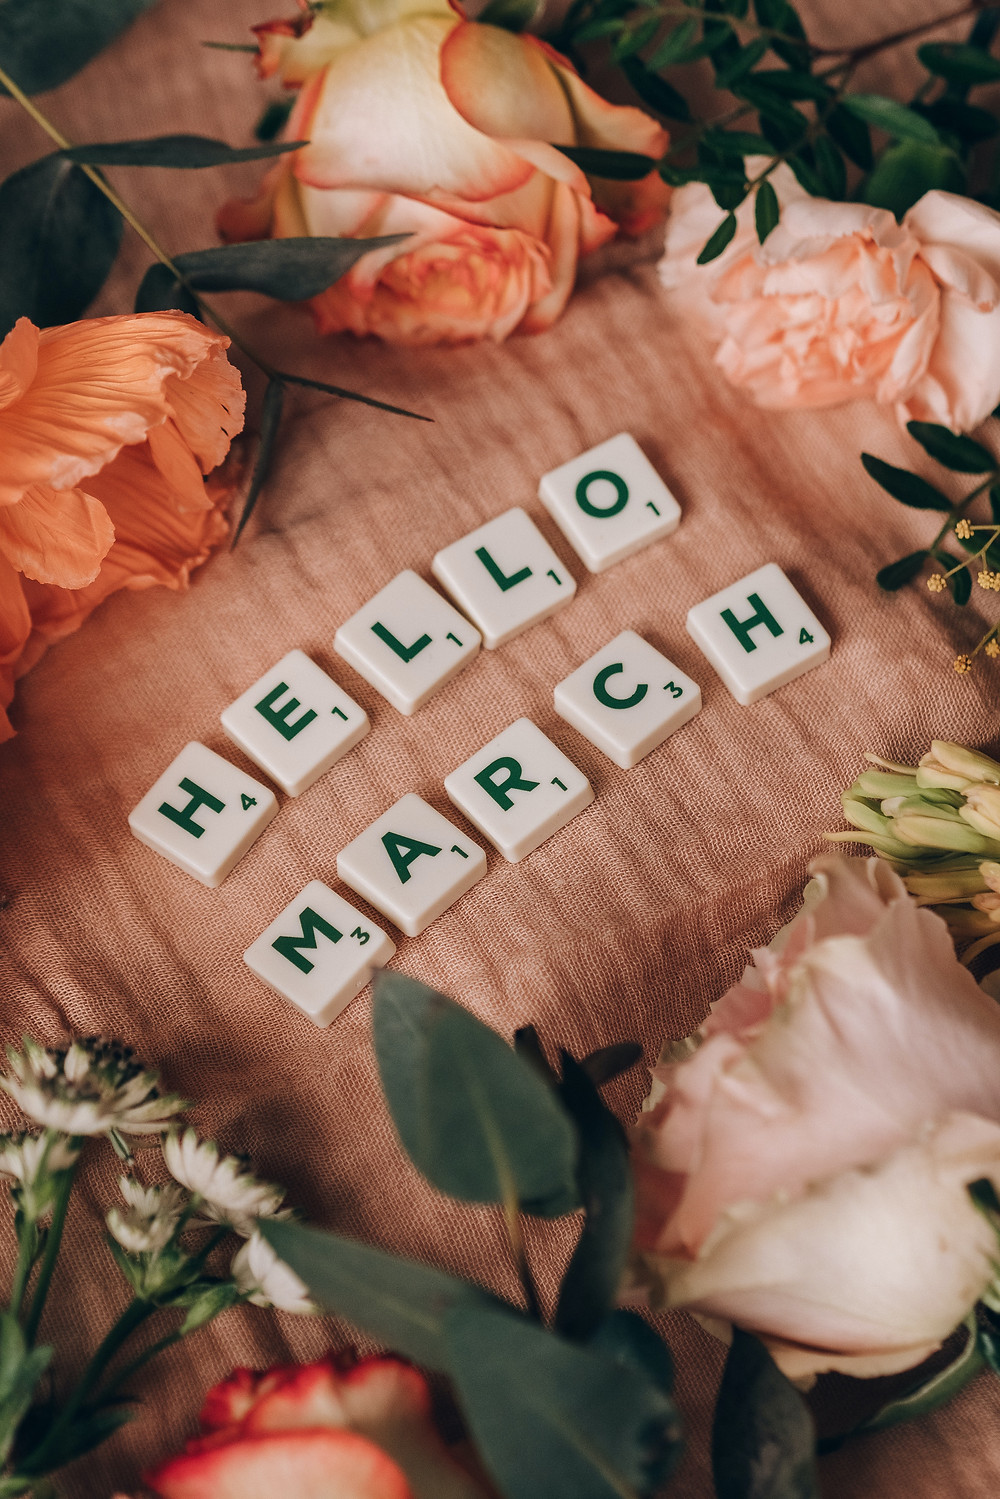 """Flowers """"Hello March"""" spelled out on tiles"""